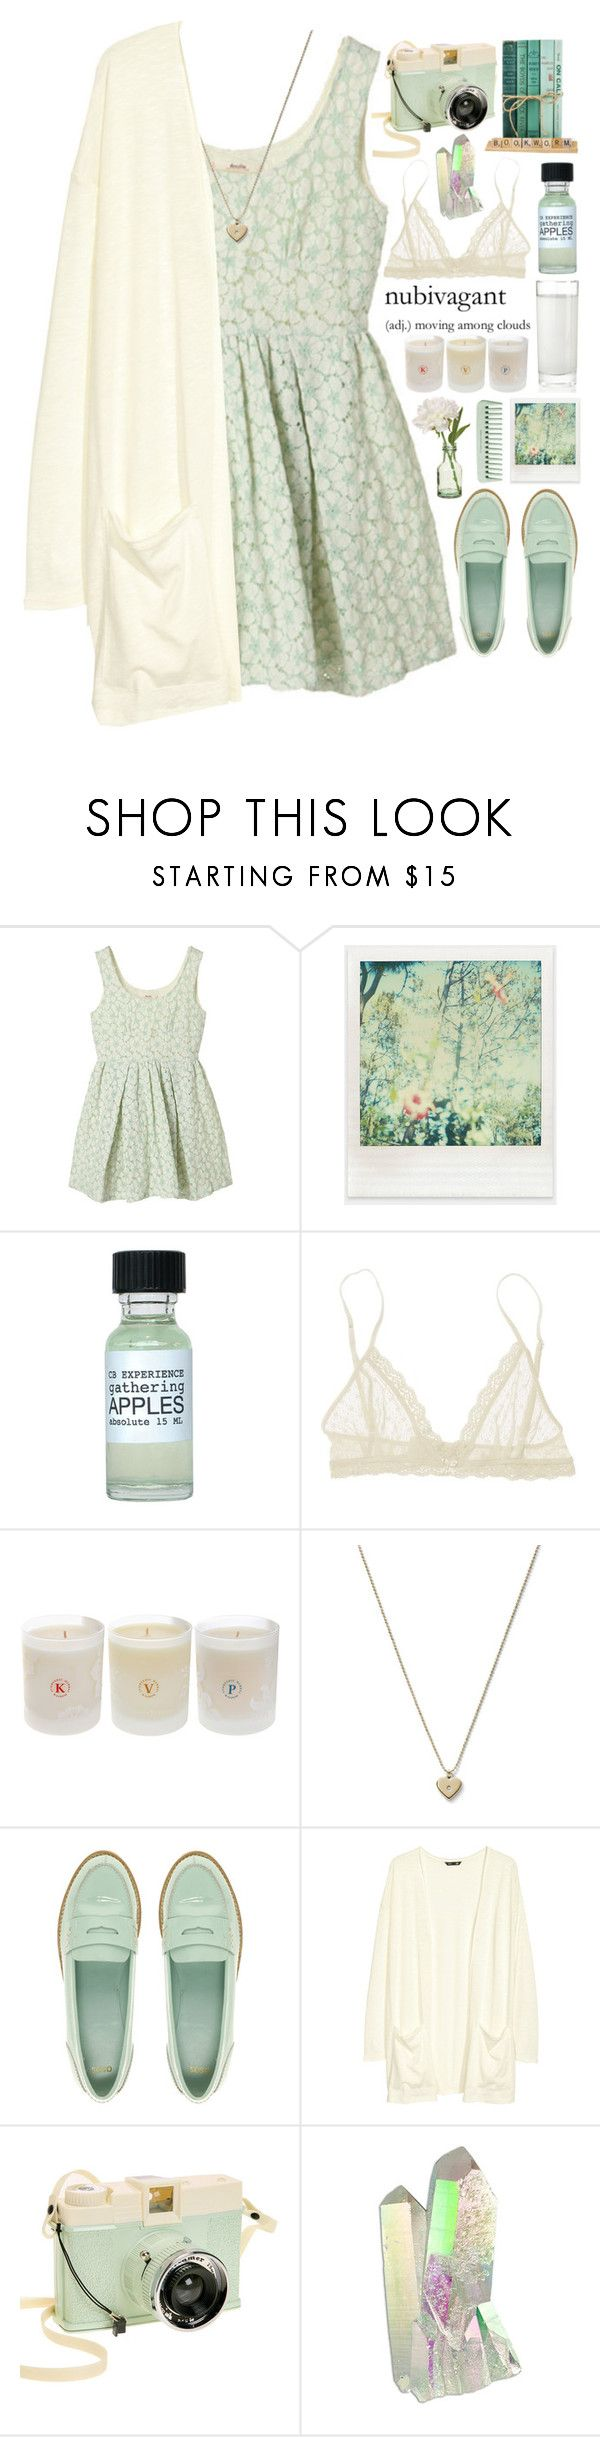 """Nubivagant"" by dayliant ❤ liked on Polyvore featuring Polaroid, GANT, Eberjey, Chopra Center, Michael Kors, Peony, ASOS, H&M and Lomography"